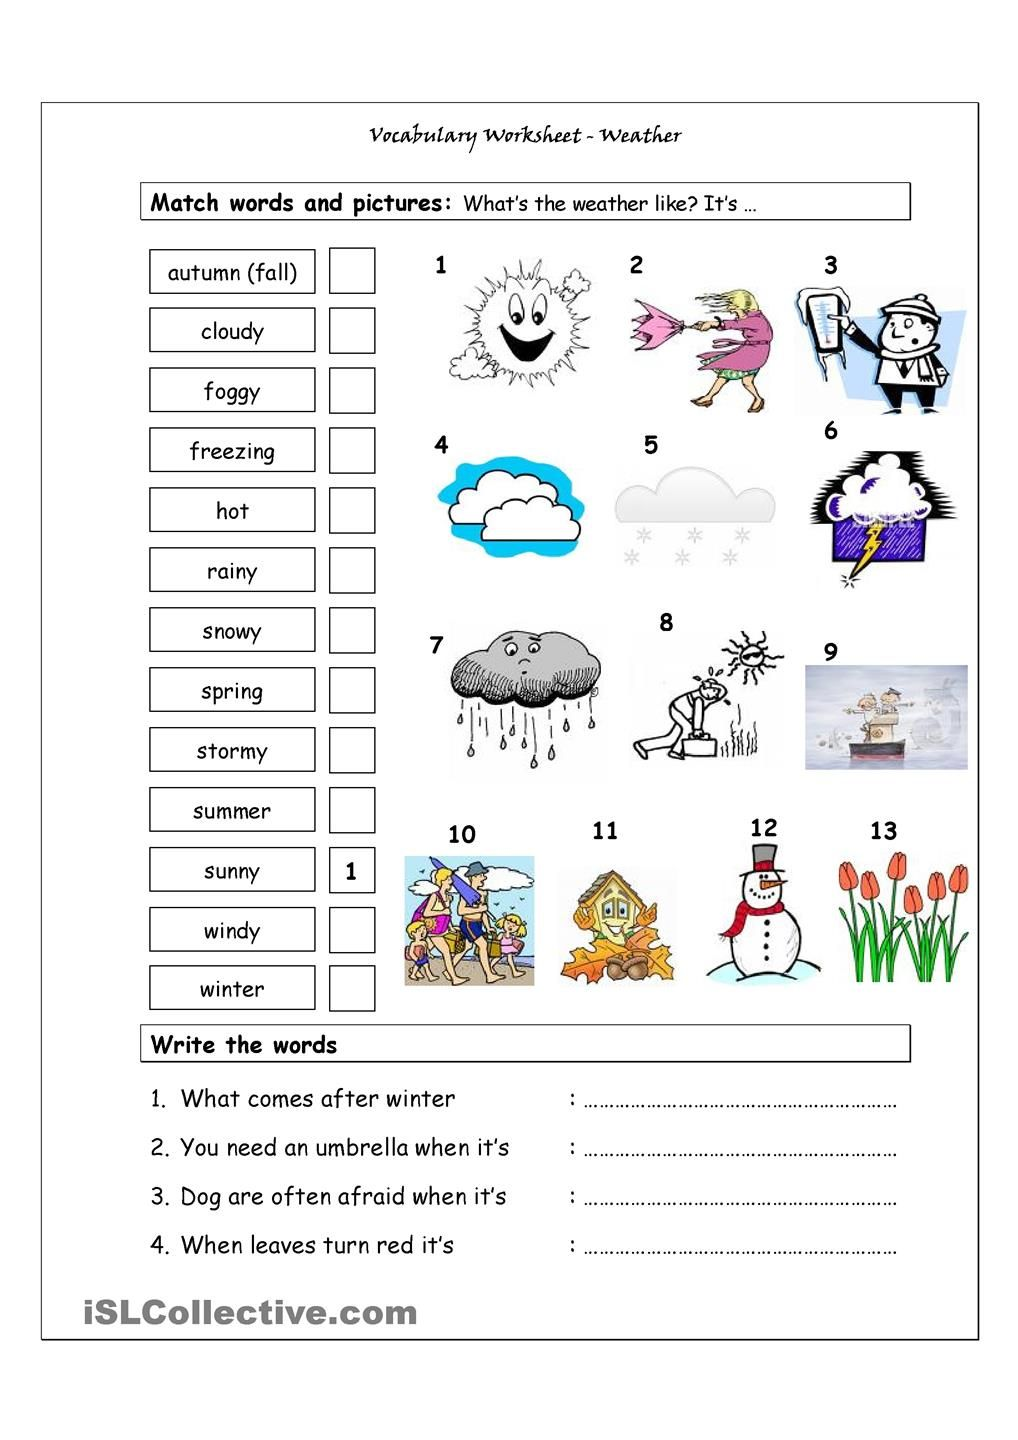 Worksheets Vocabulary Matching Worksheet vocabulary matching worksheet weather teachers pinterest weather